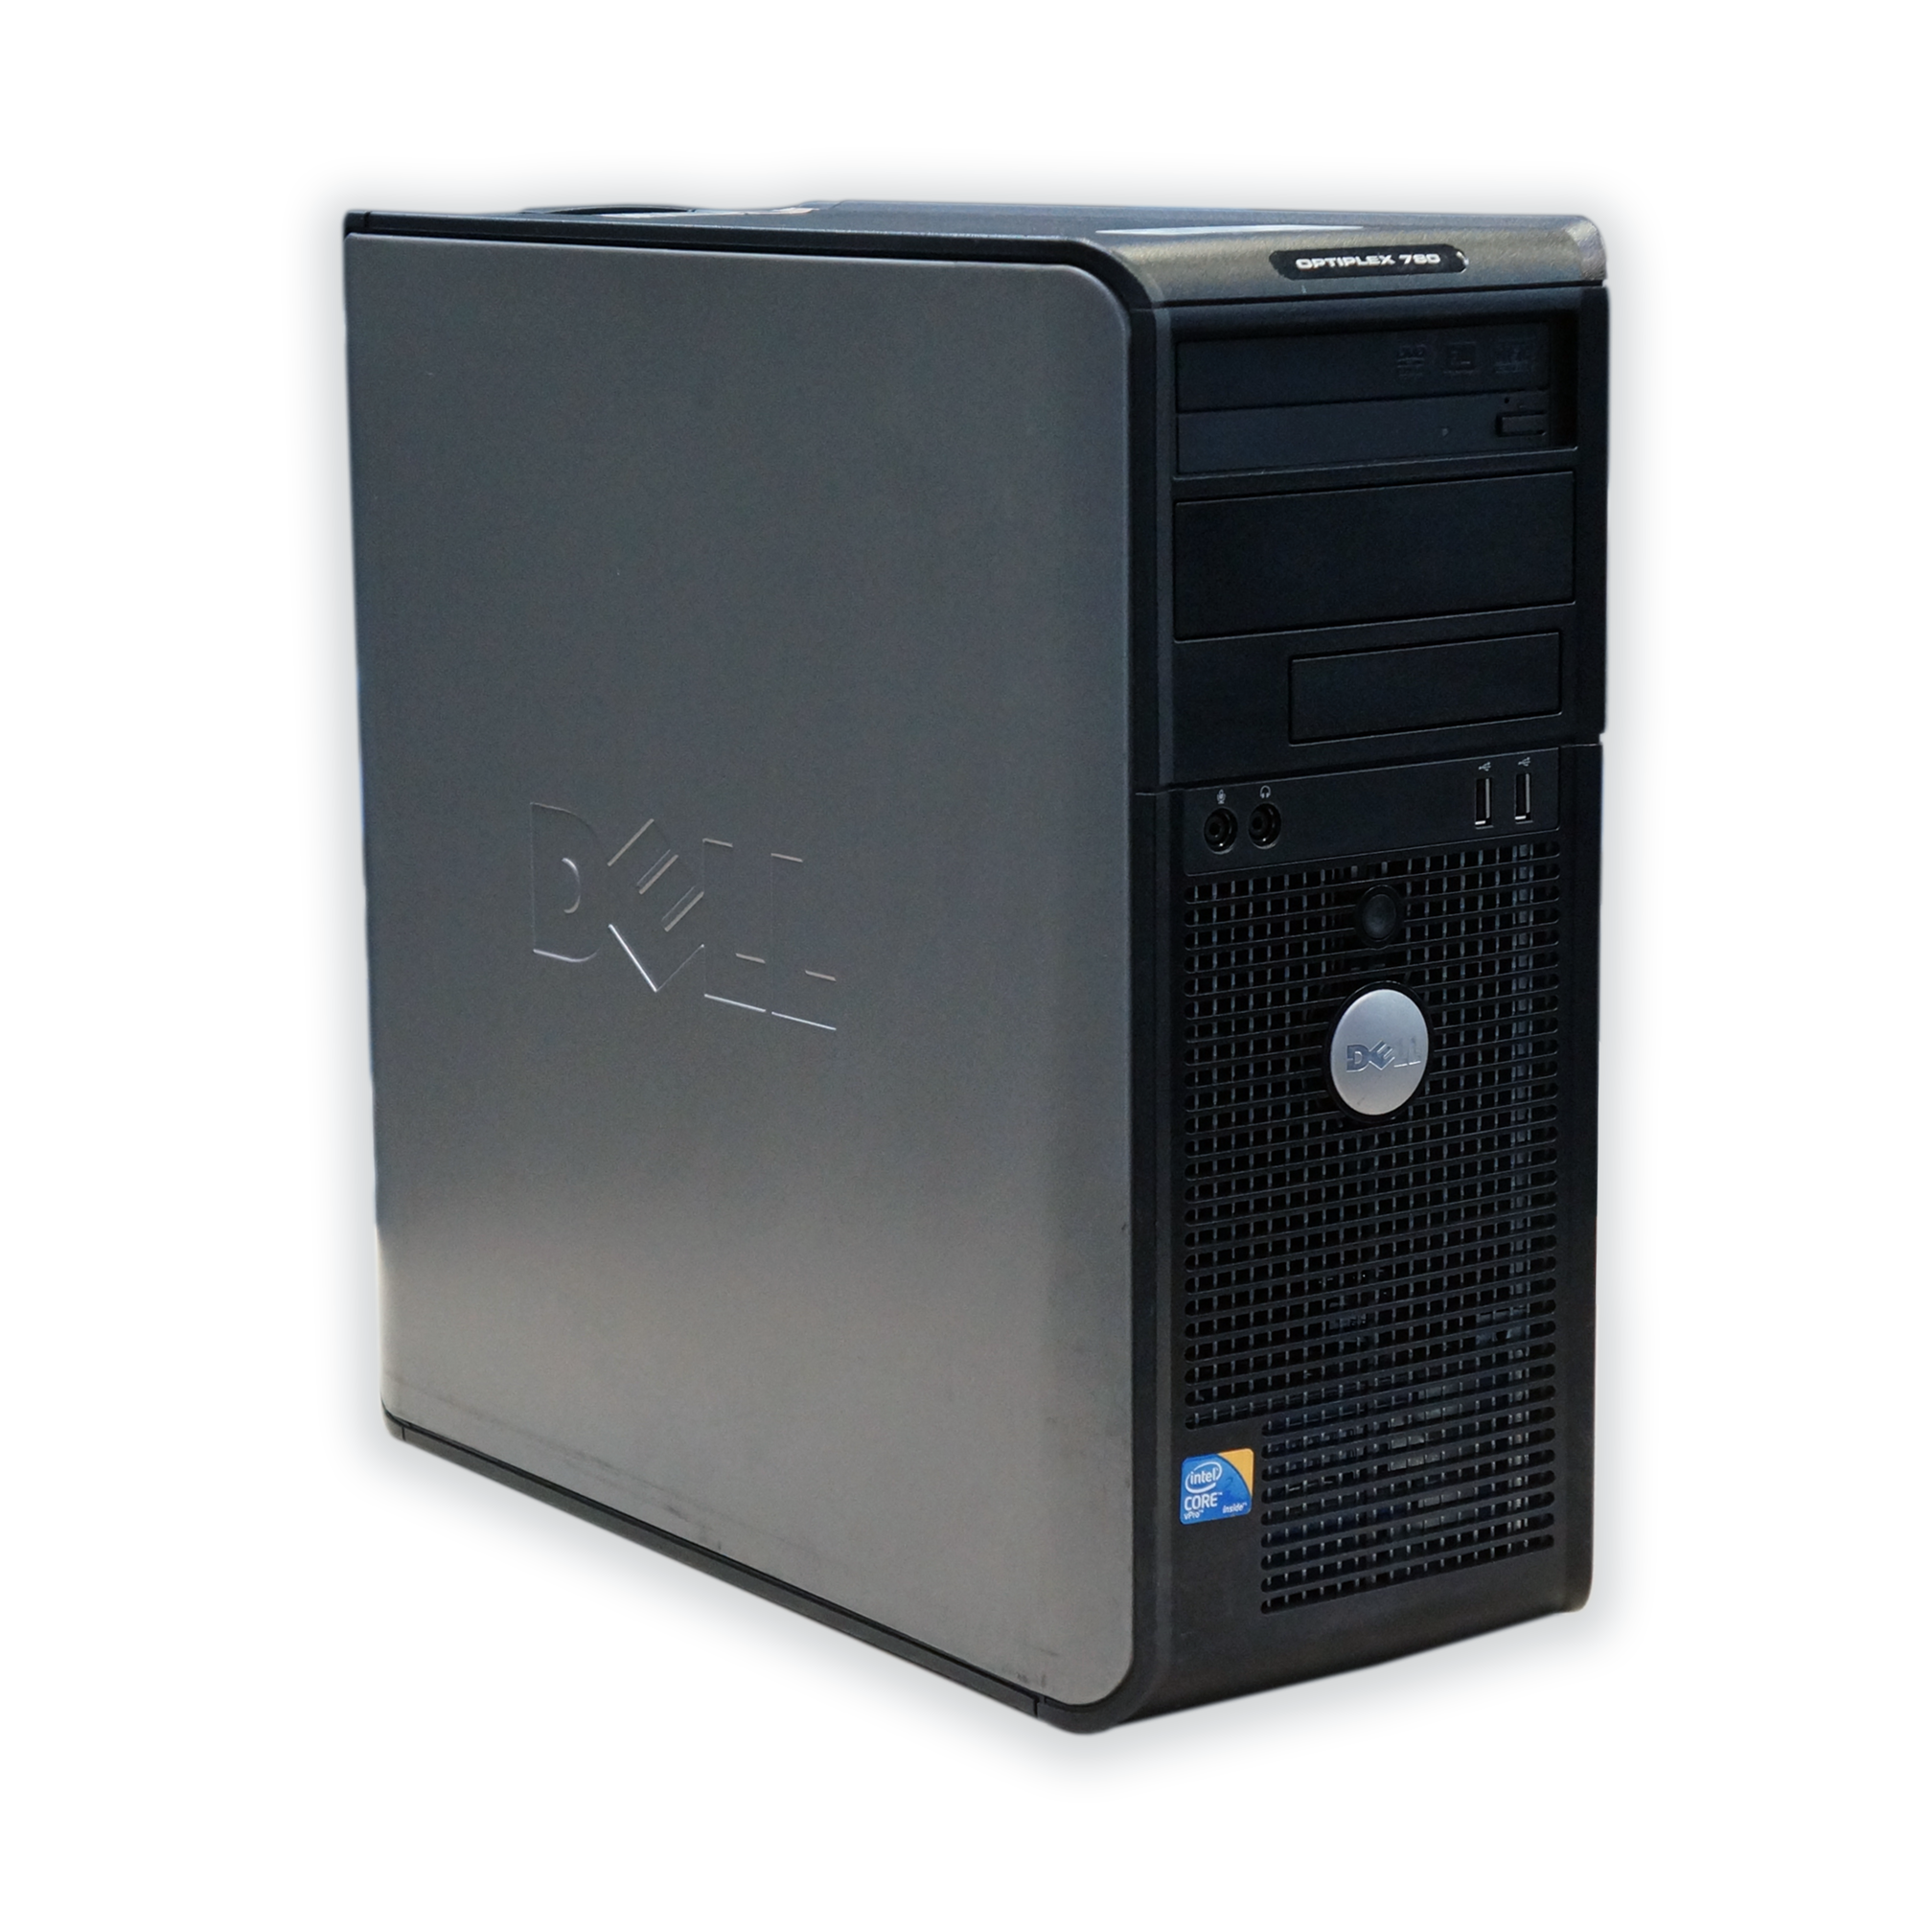 Počítač Dell OptiPlex 780 tower Intel Core 2 Duo E7500 2,93 GHz, 4 GB RAM, 250 GB HDD, Intel GMA, DVD-ROM, COA štítek Windows 7 PRO